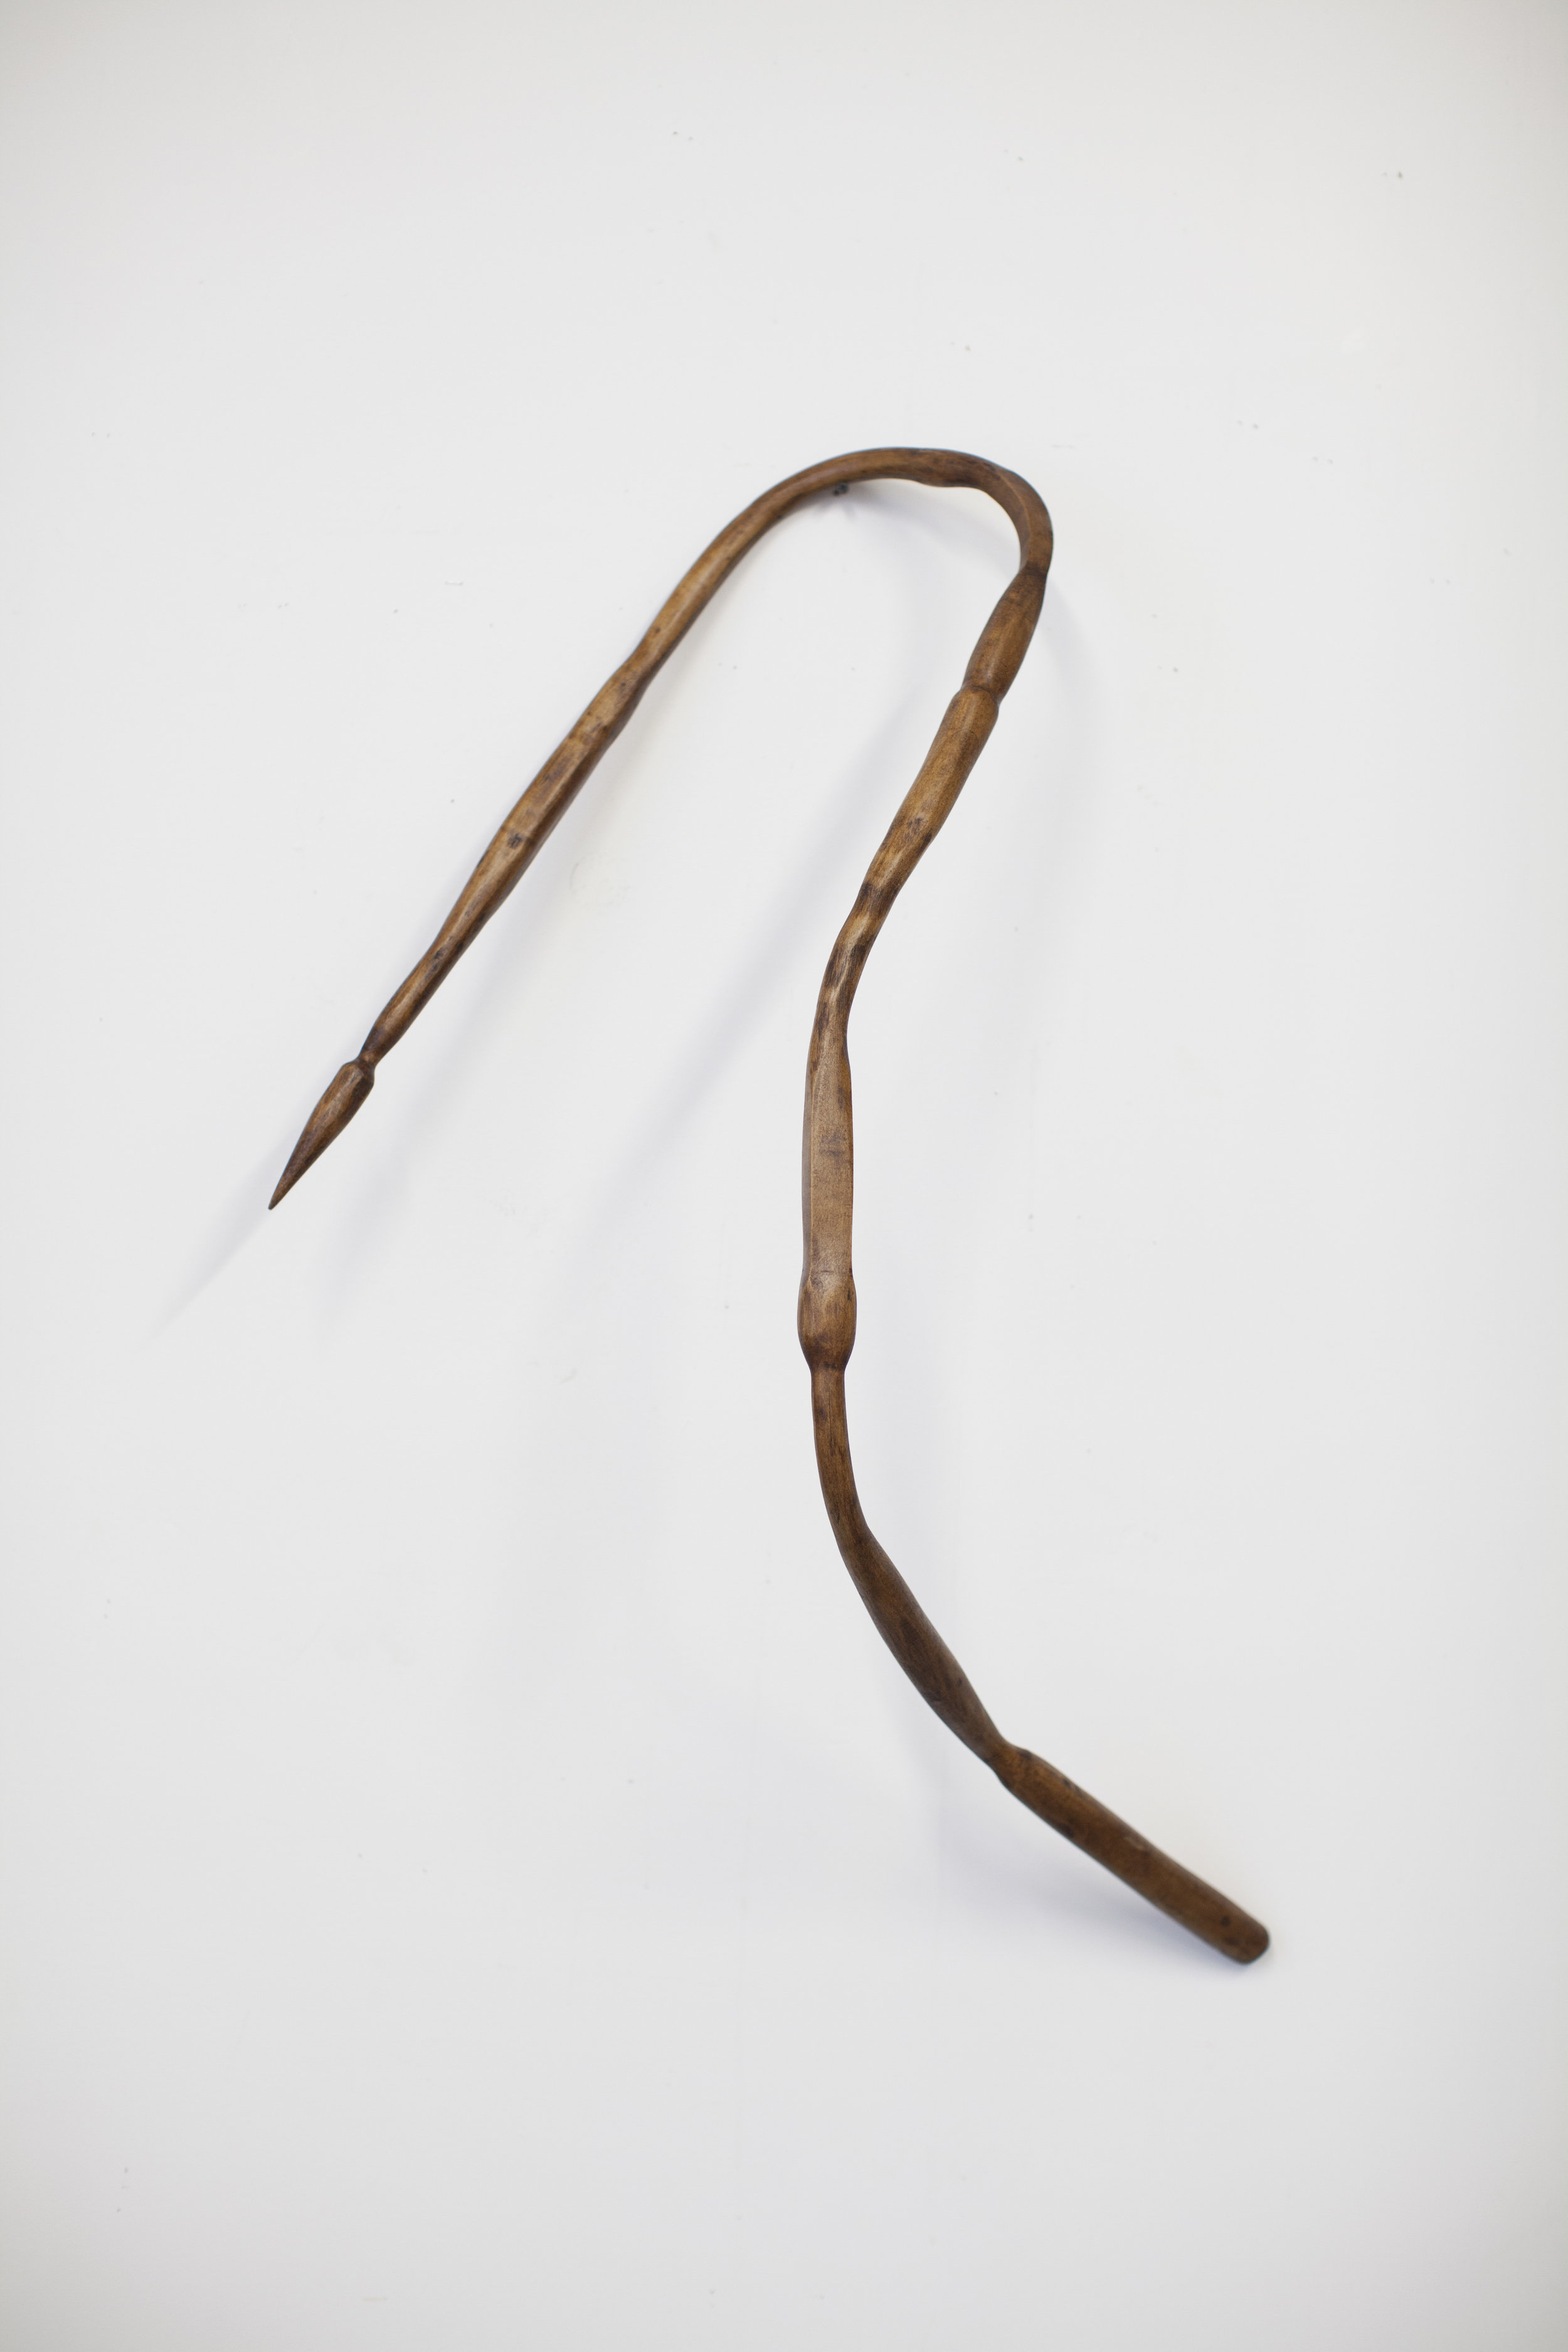 Bent Ash Wood, 2018, 27 x 40 x 13 inches